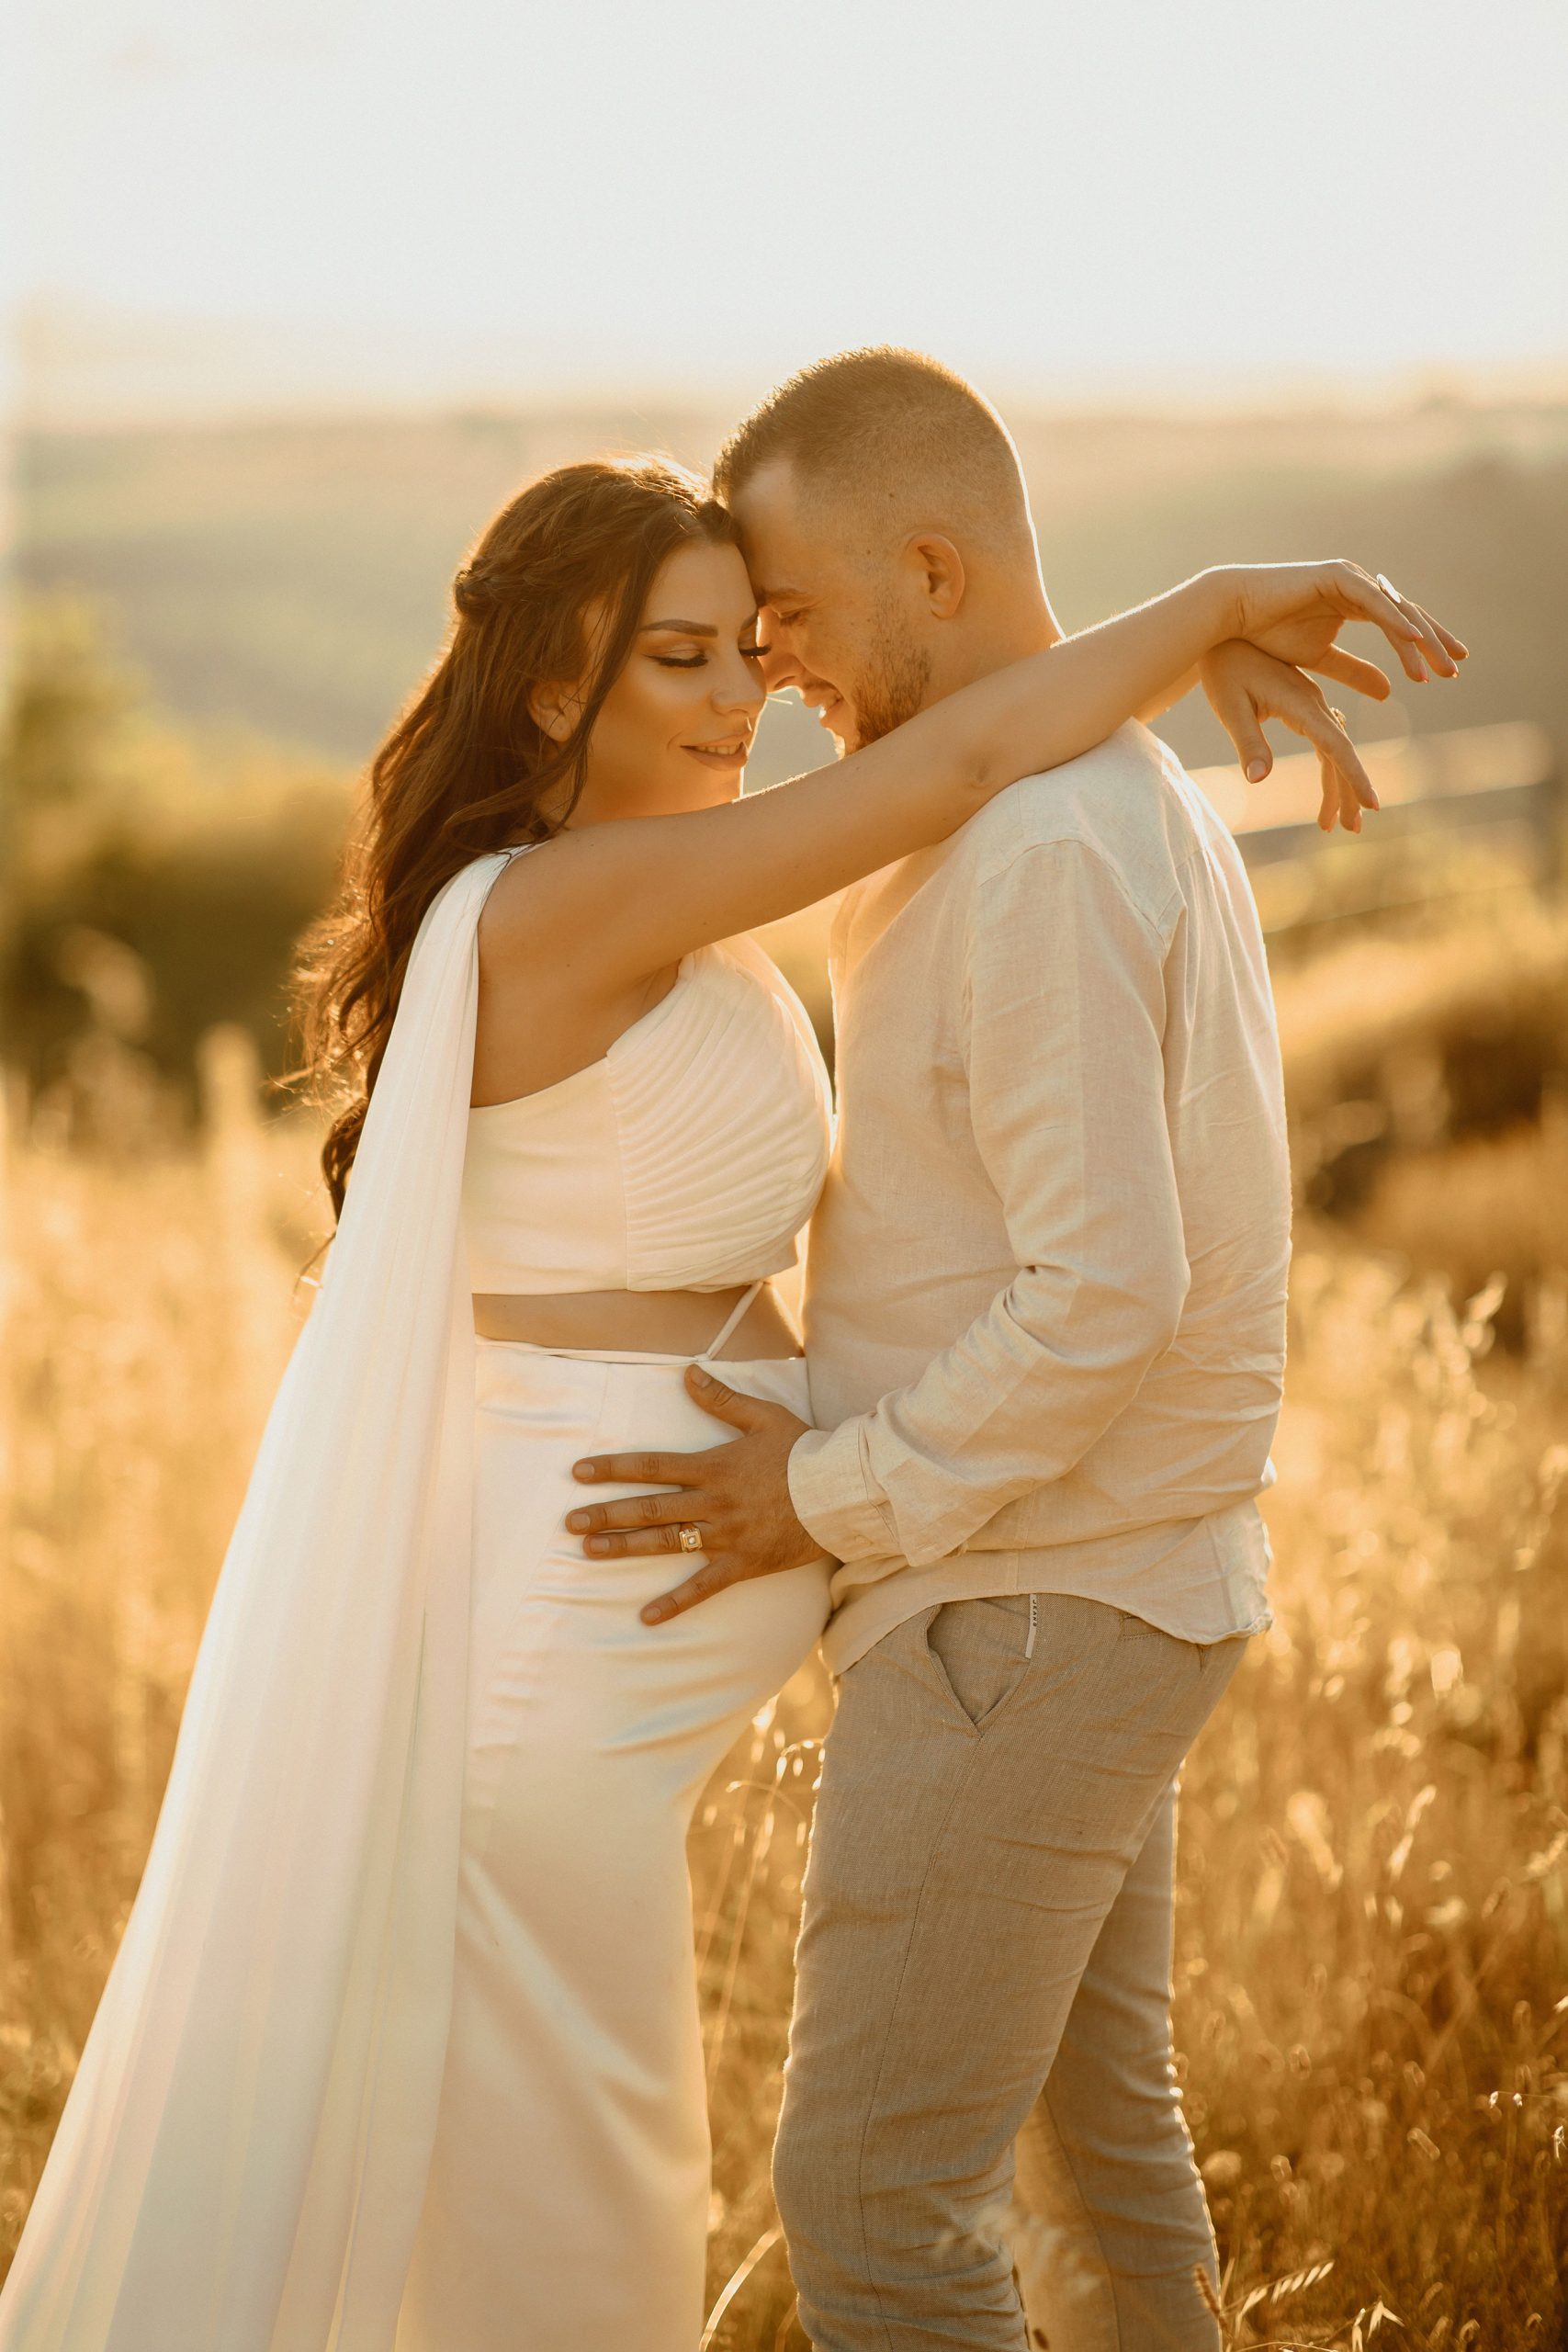 Simple Gender Reveal Photography